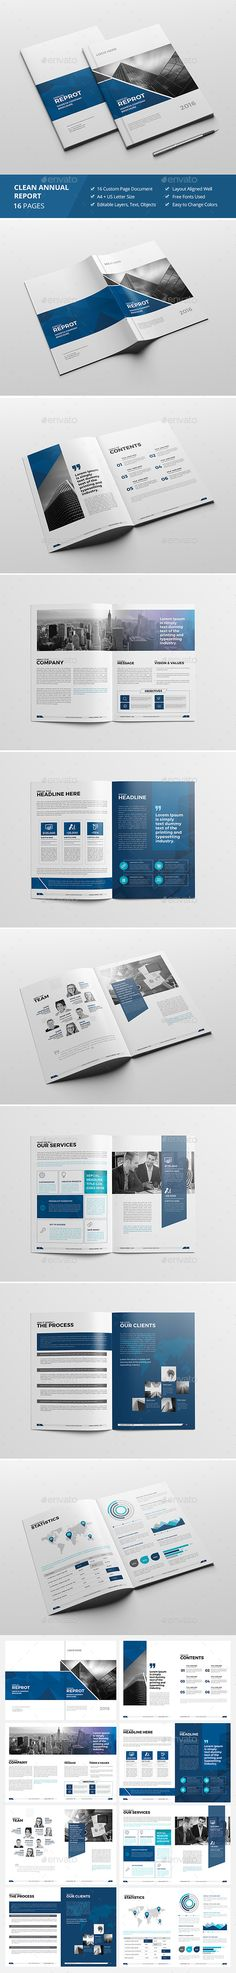 75+ Free PSD Magazine, Book, Cover \ Brochure Mock-ups Template - booklet template free download